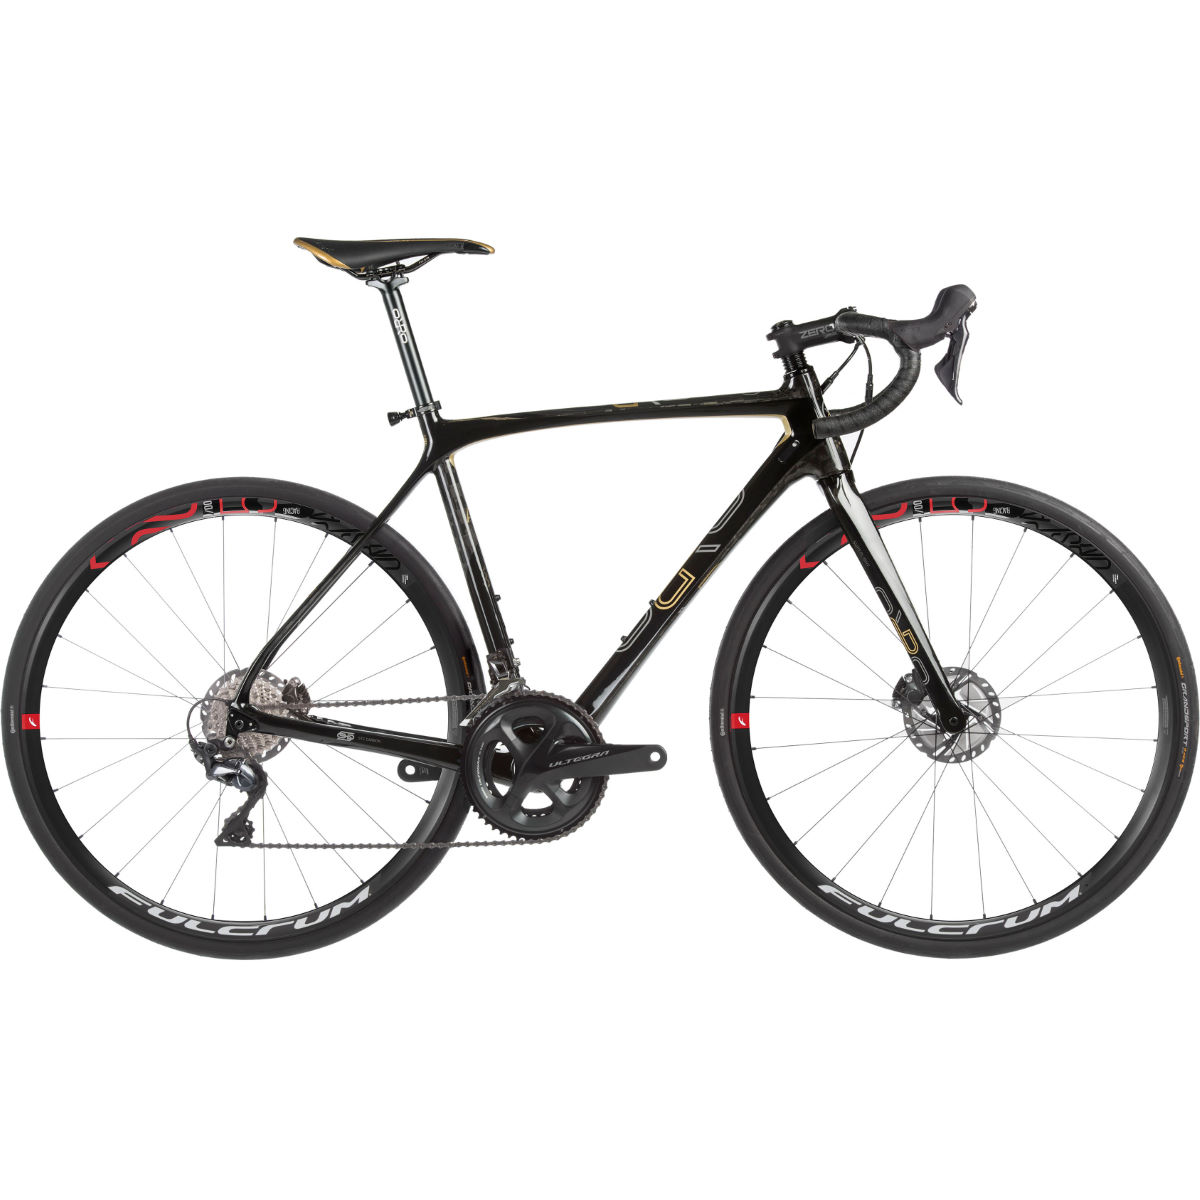 Orro GOLD STC Disc Ultegra Racing (2019) Bike - Bicicletas de carretera